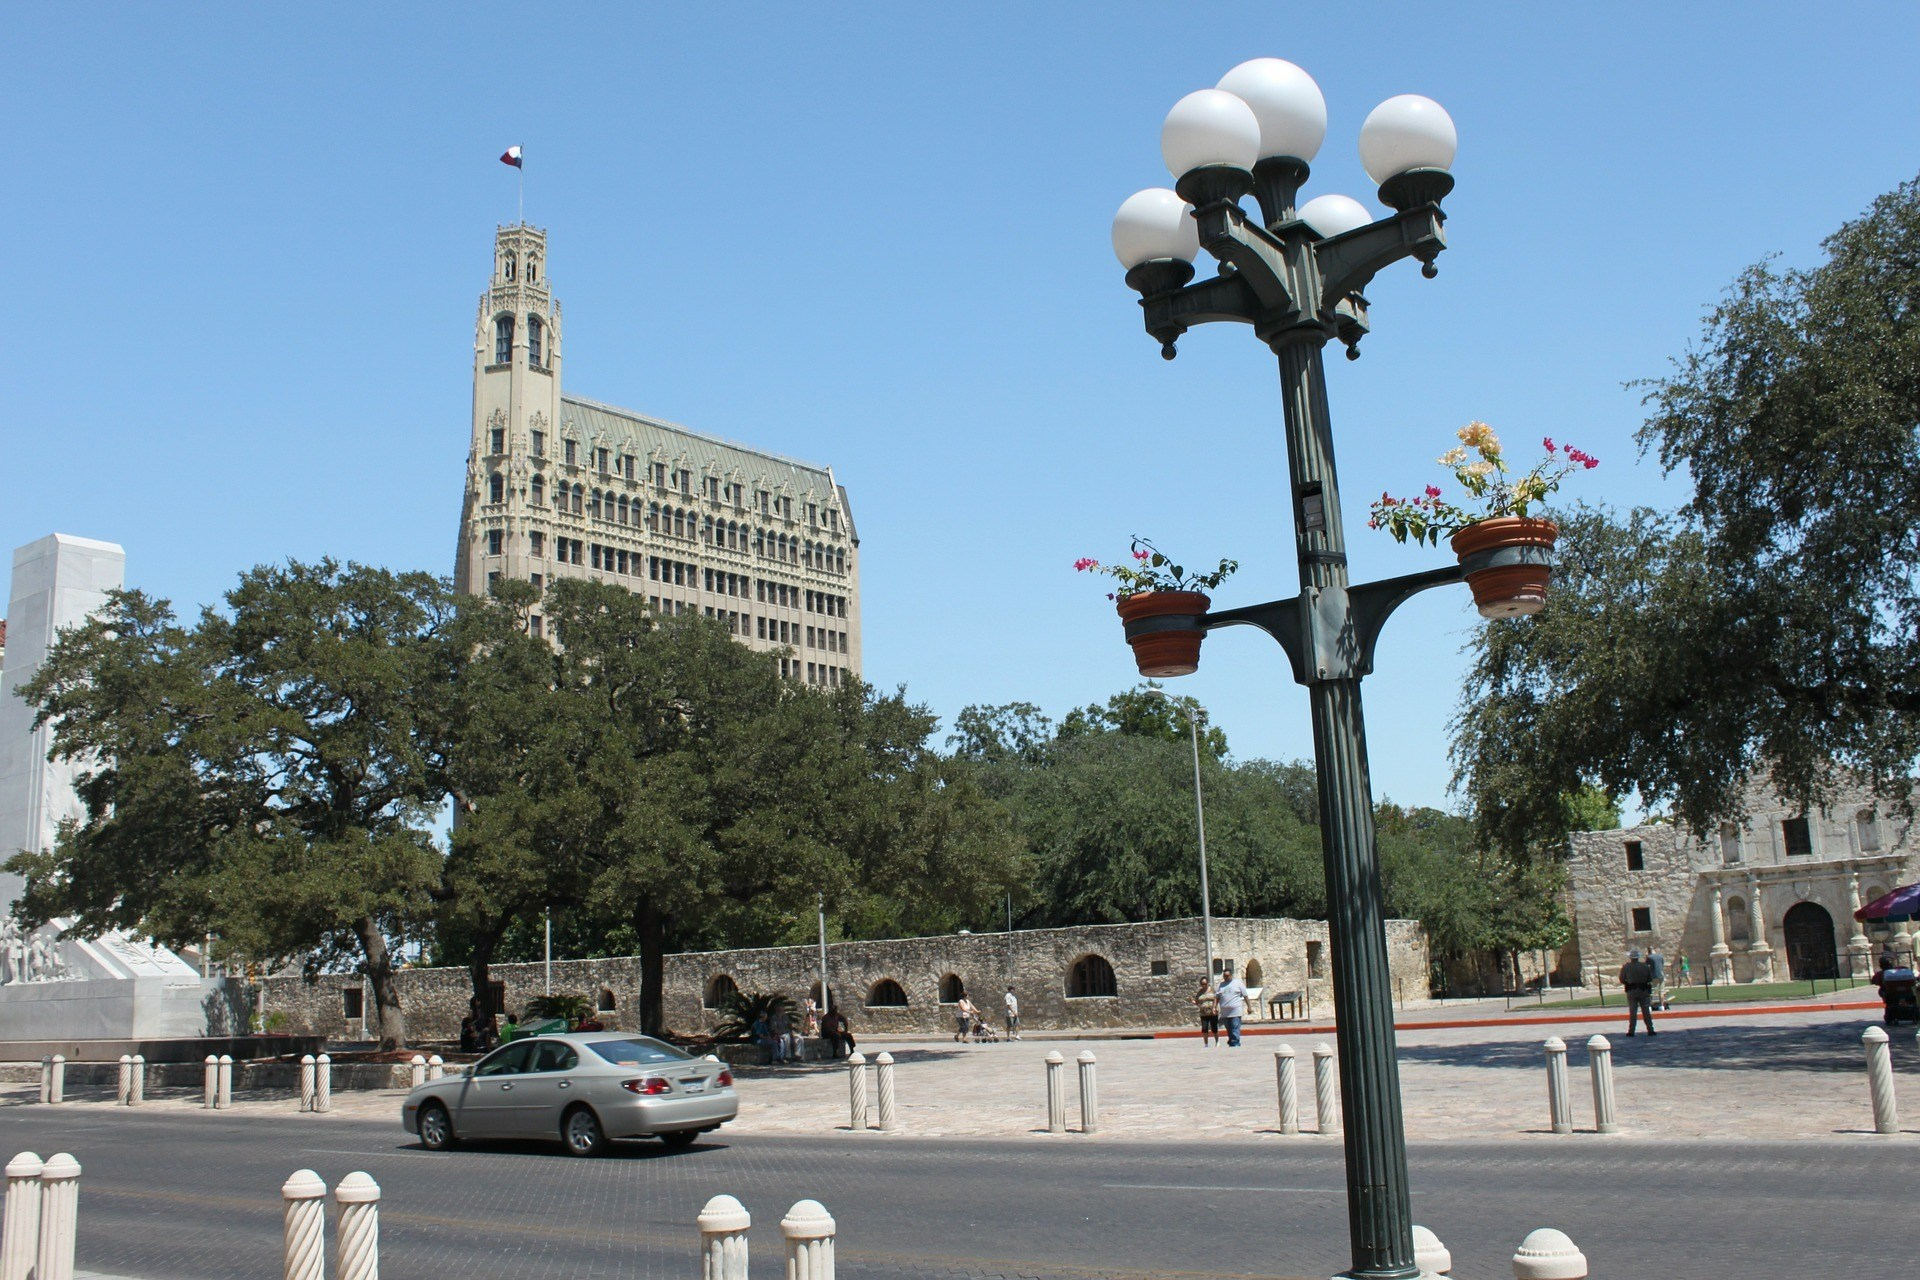 Downtown, San Antonio